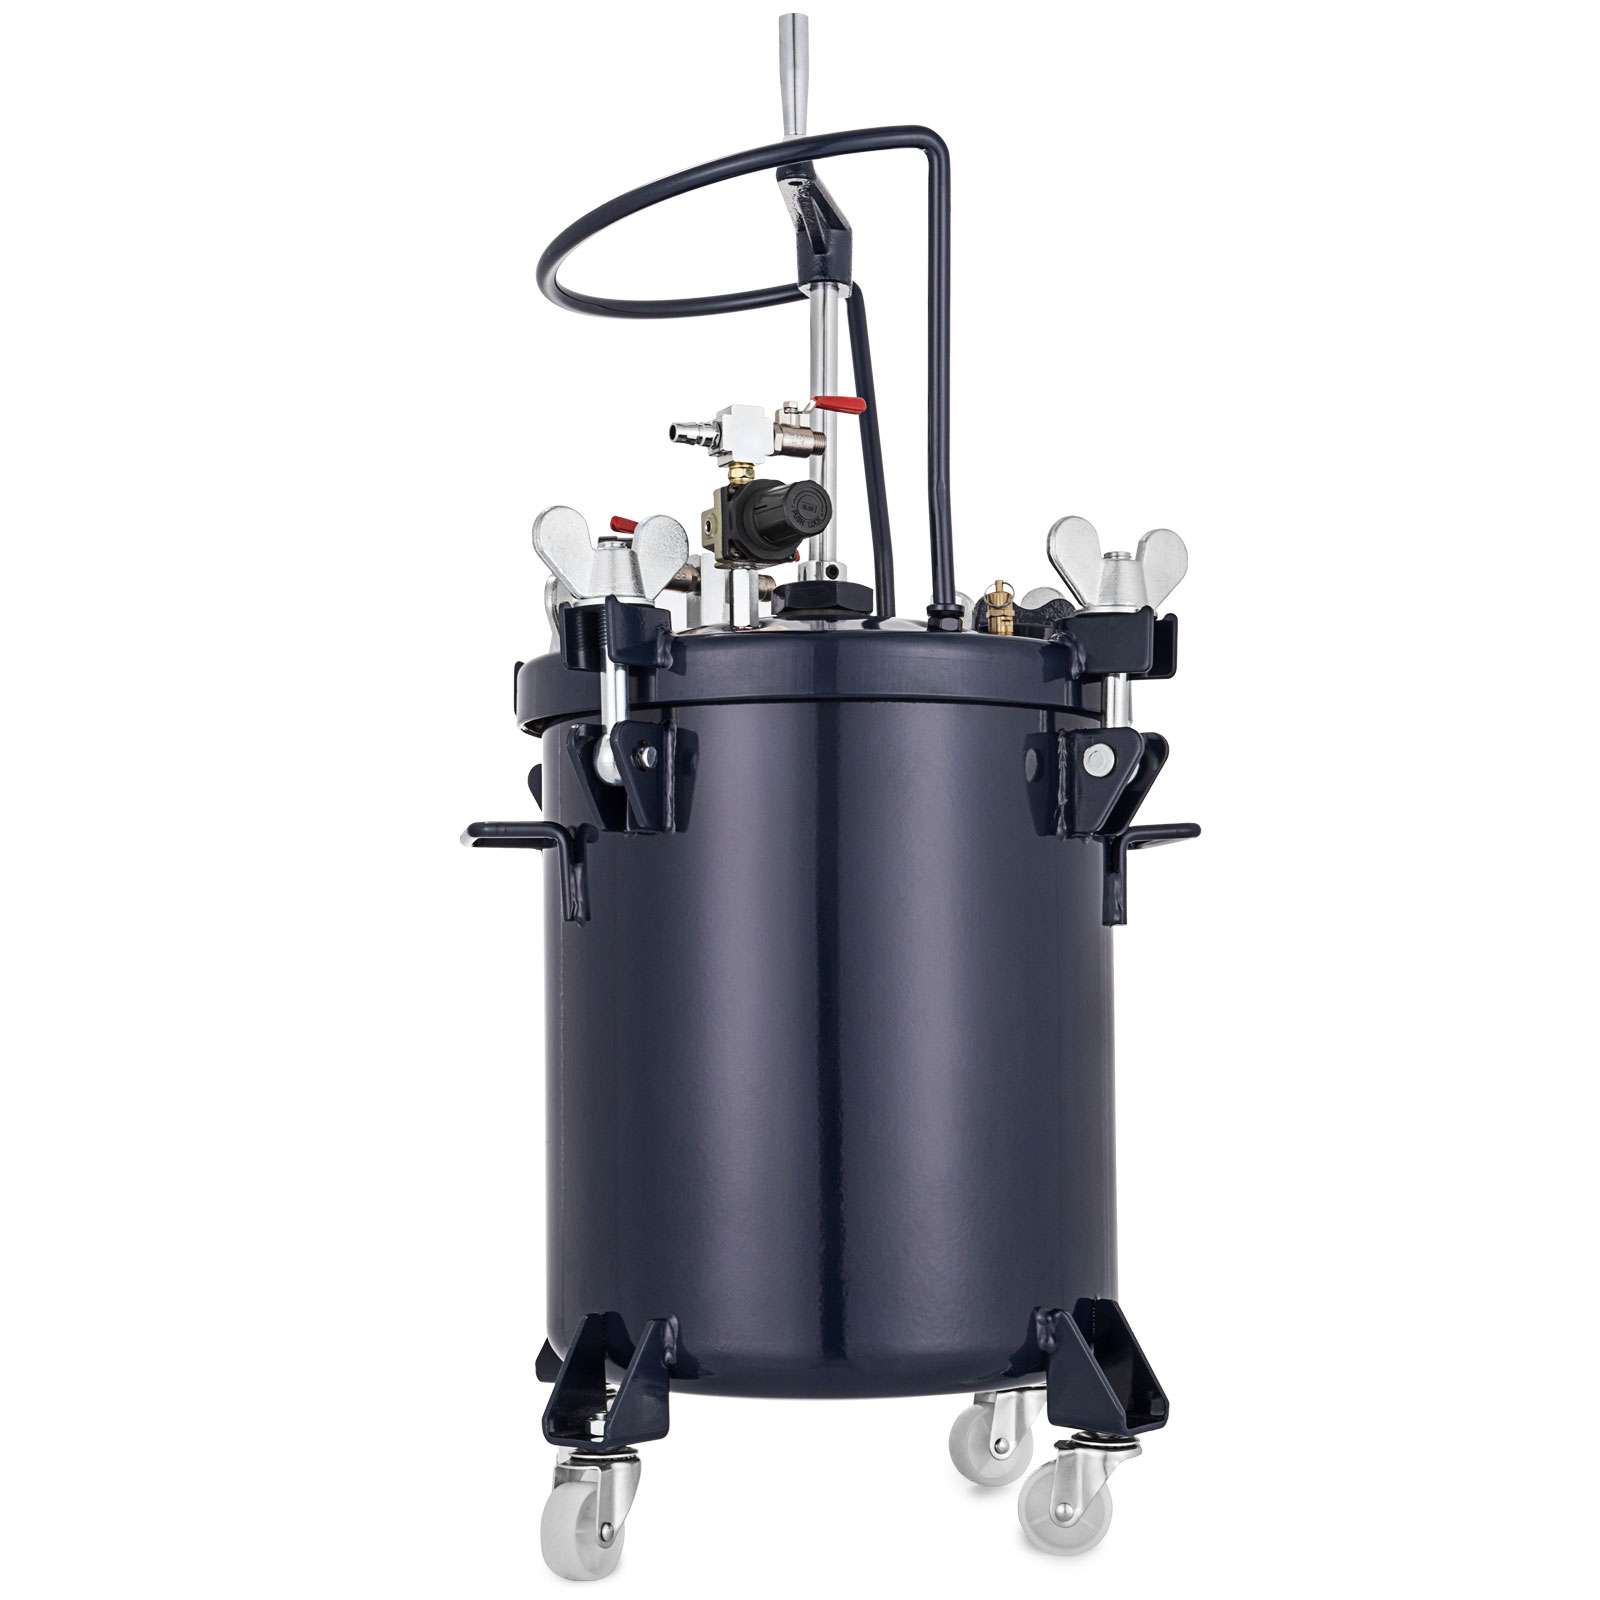 Commercial 2.5 5 8 10 Gallon Spray Paint Pressure Pot Tank